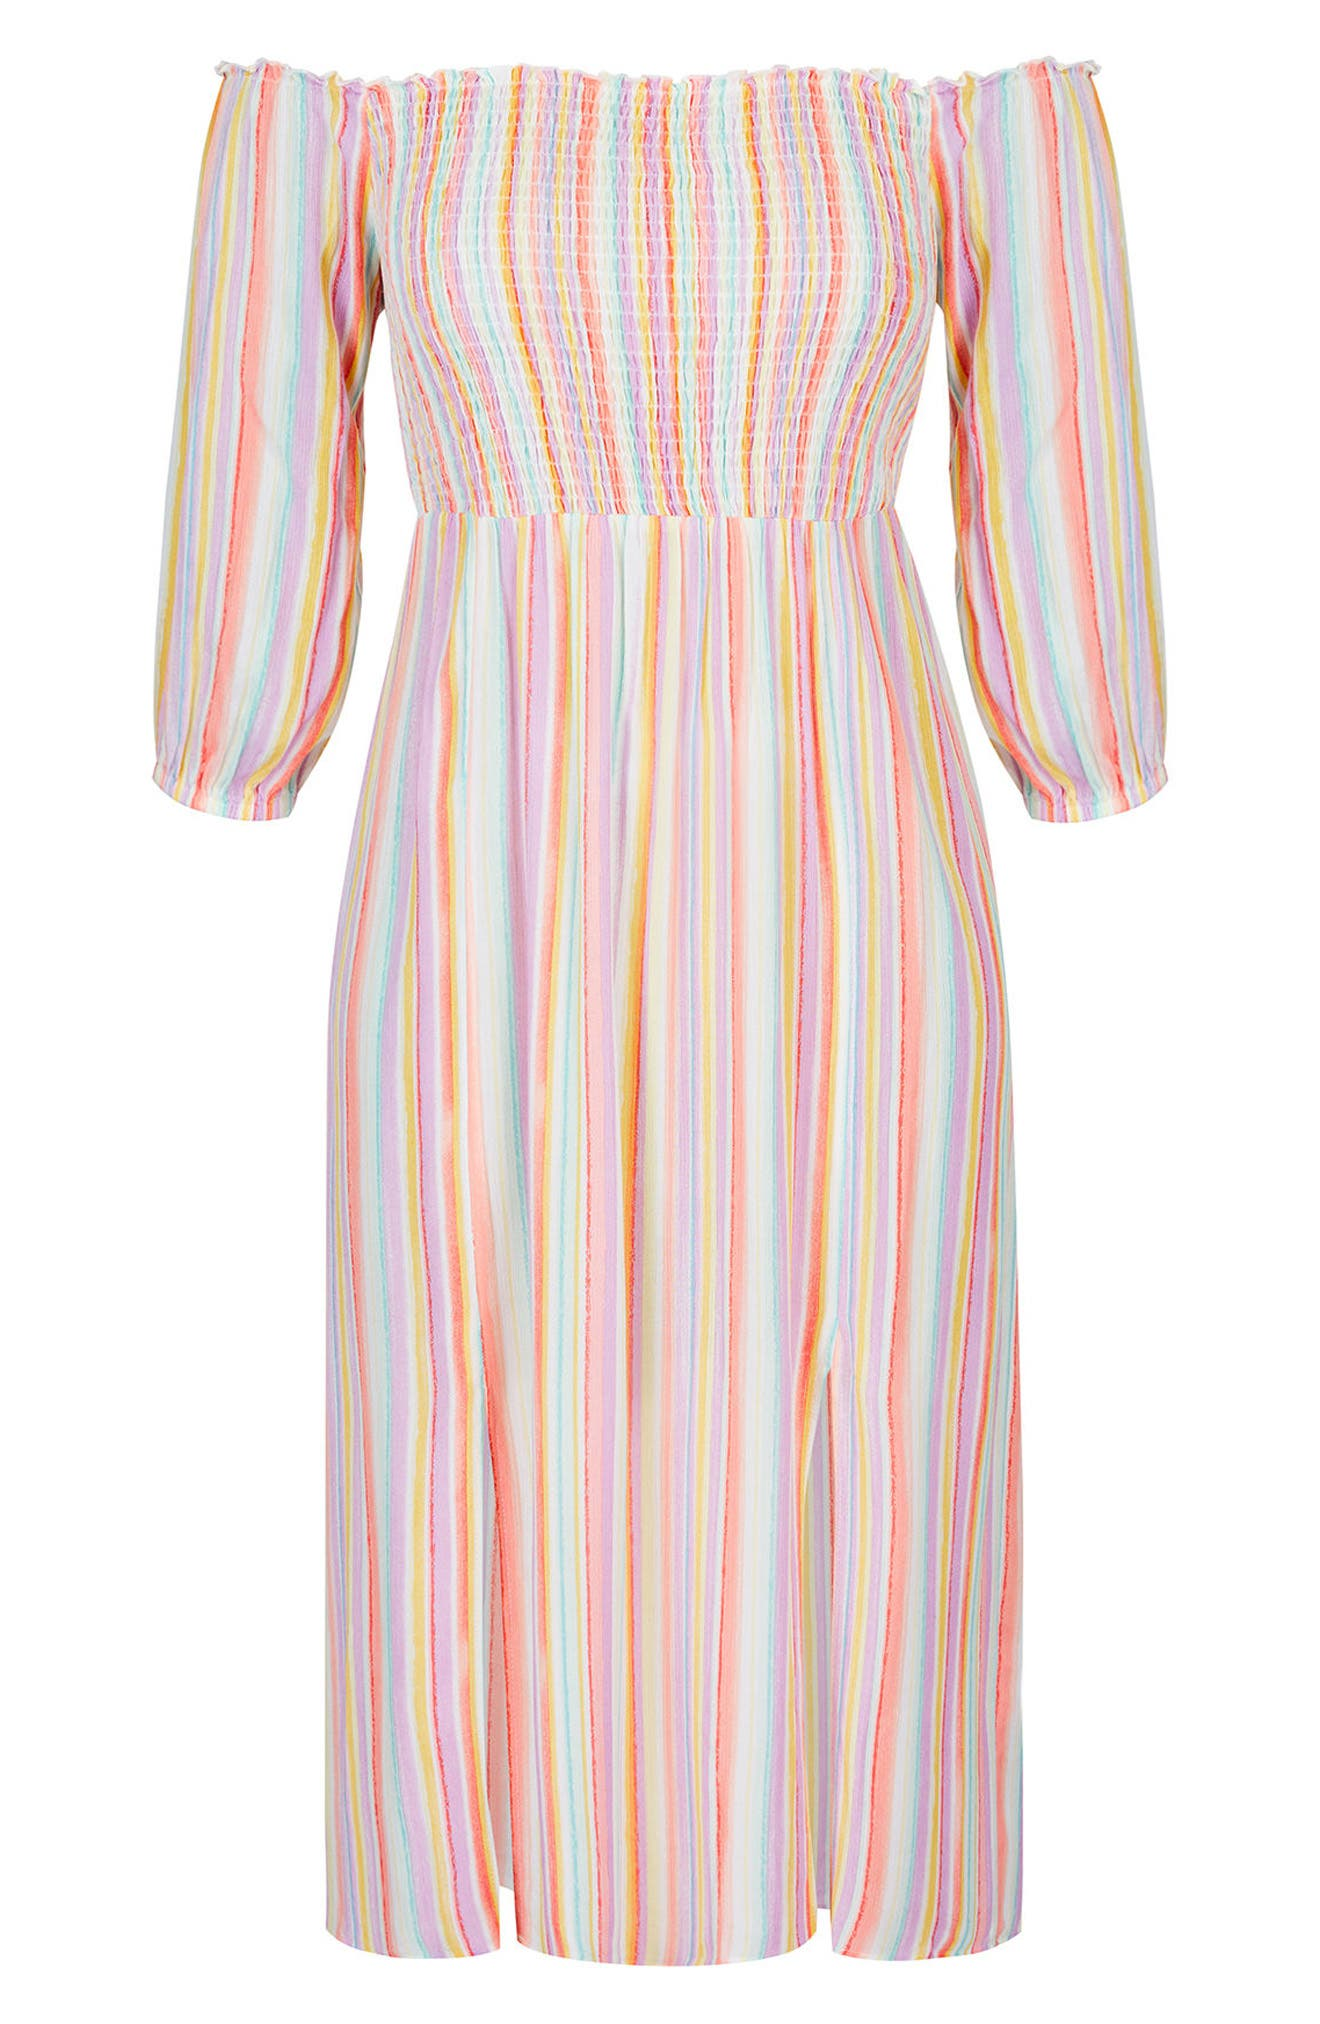 Island Stripe Midi Dress,                             Alternate thumbnail 3, color,                             ISLAND STRIPE